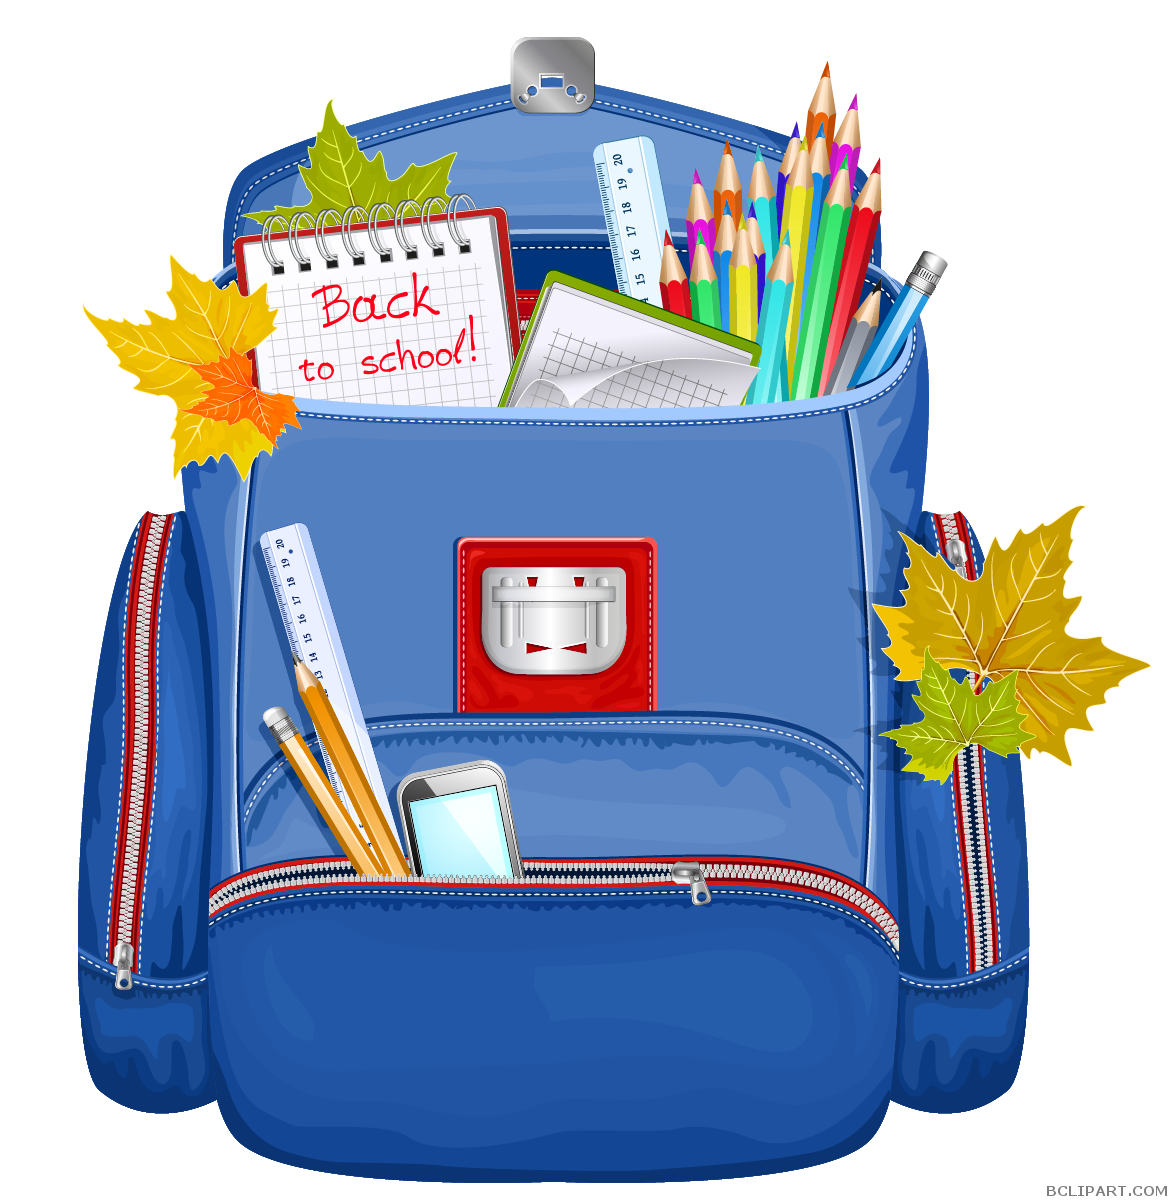 School tools clipart free School Backpack Clipart - BClipart free